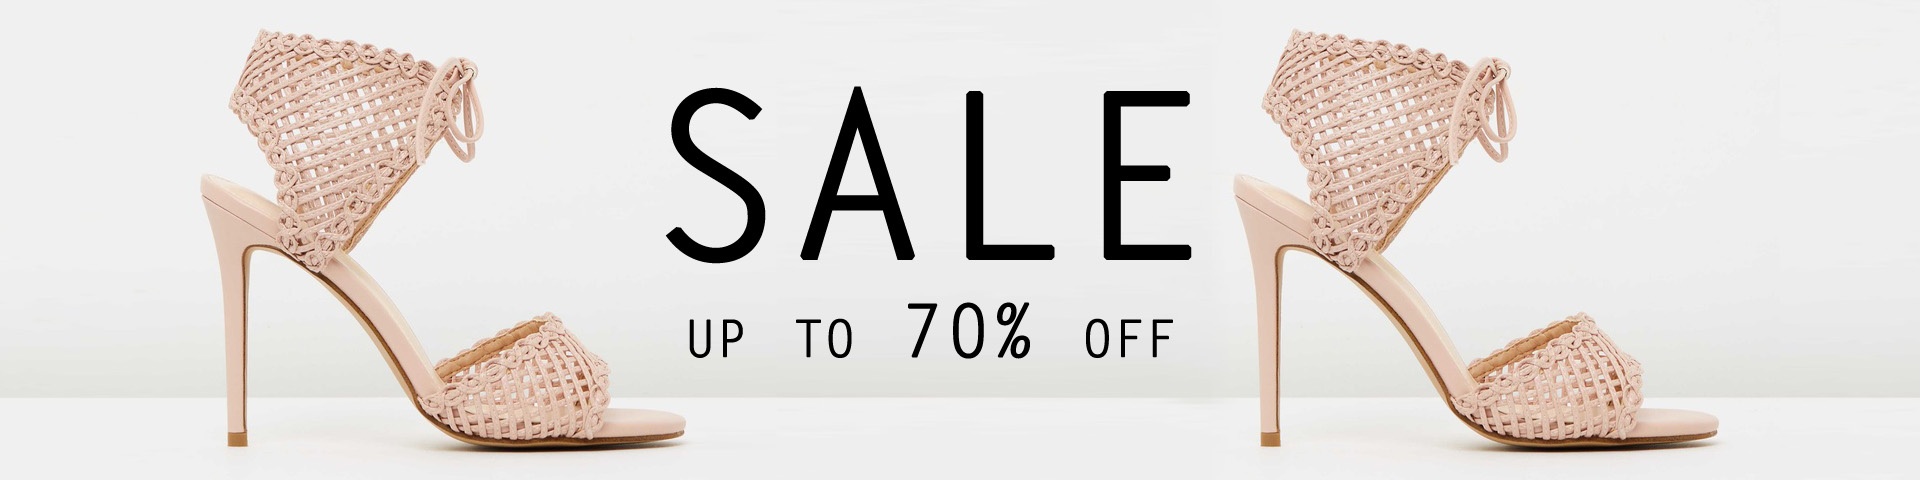 shoes on sale online